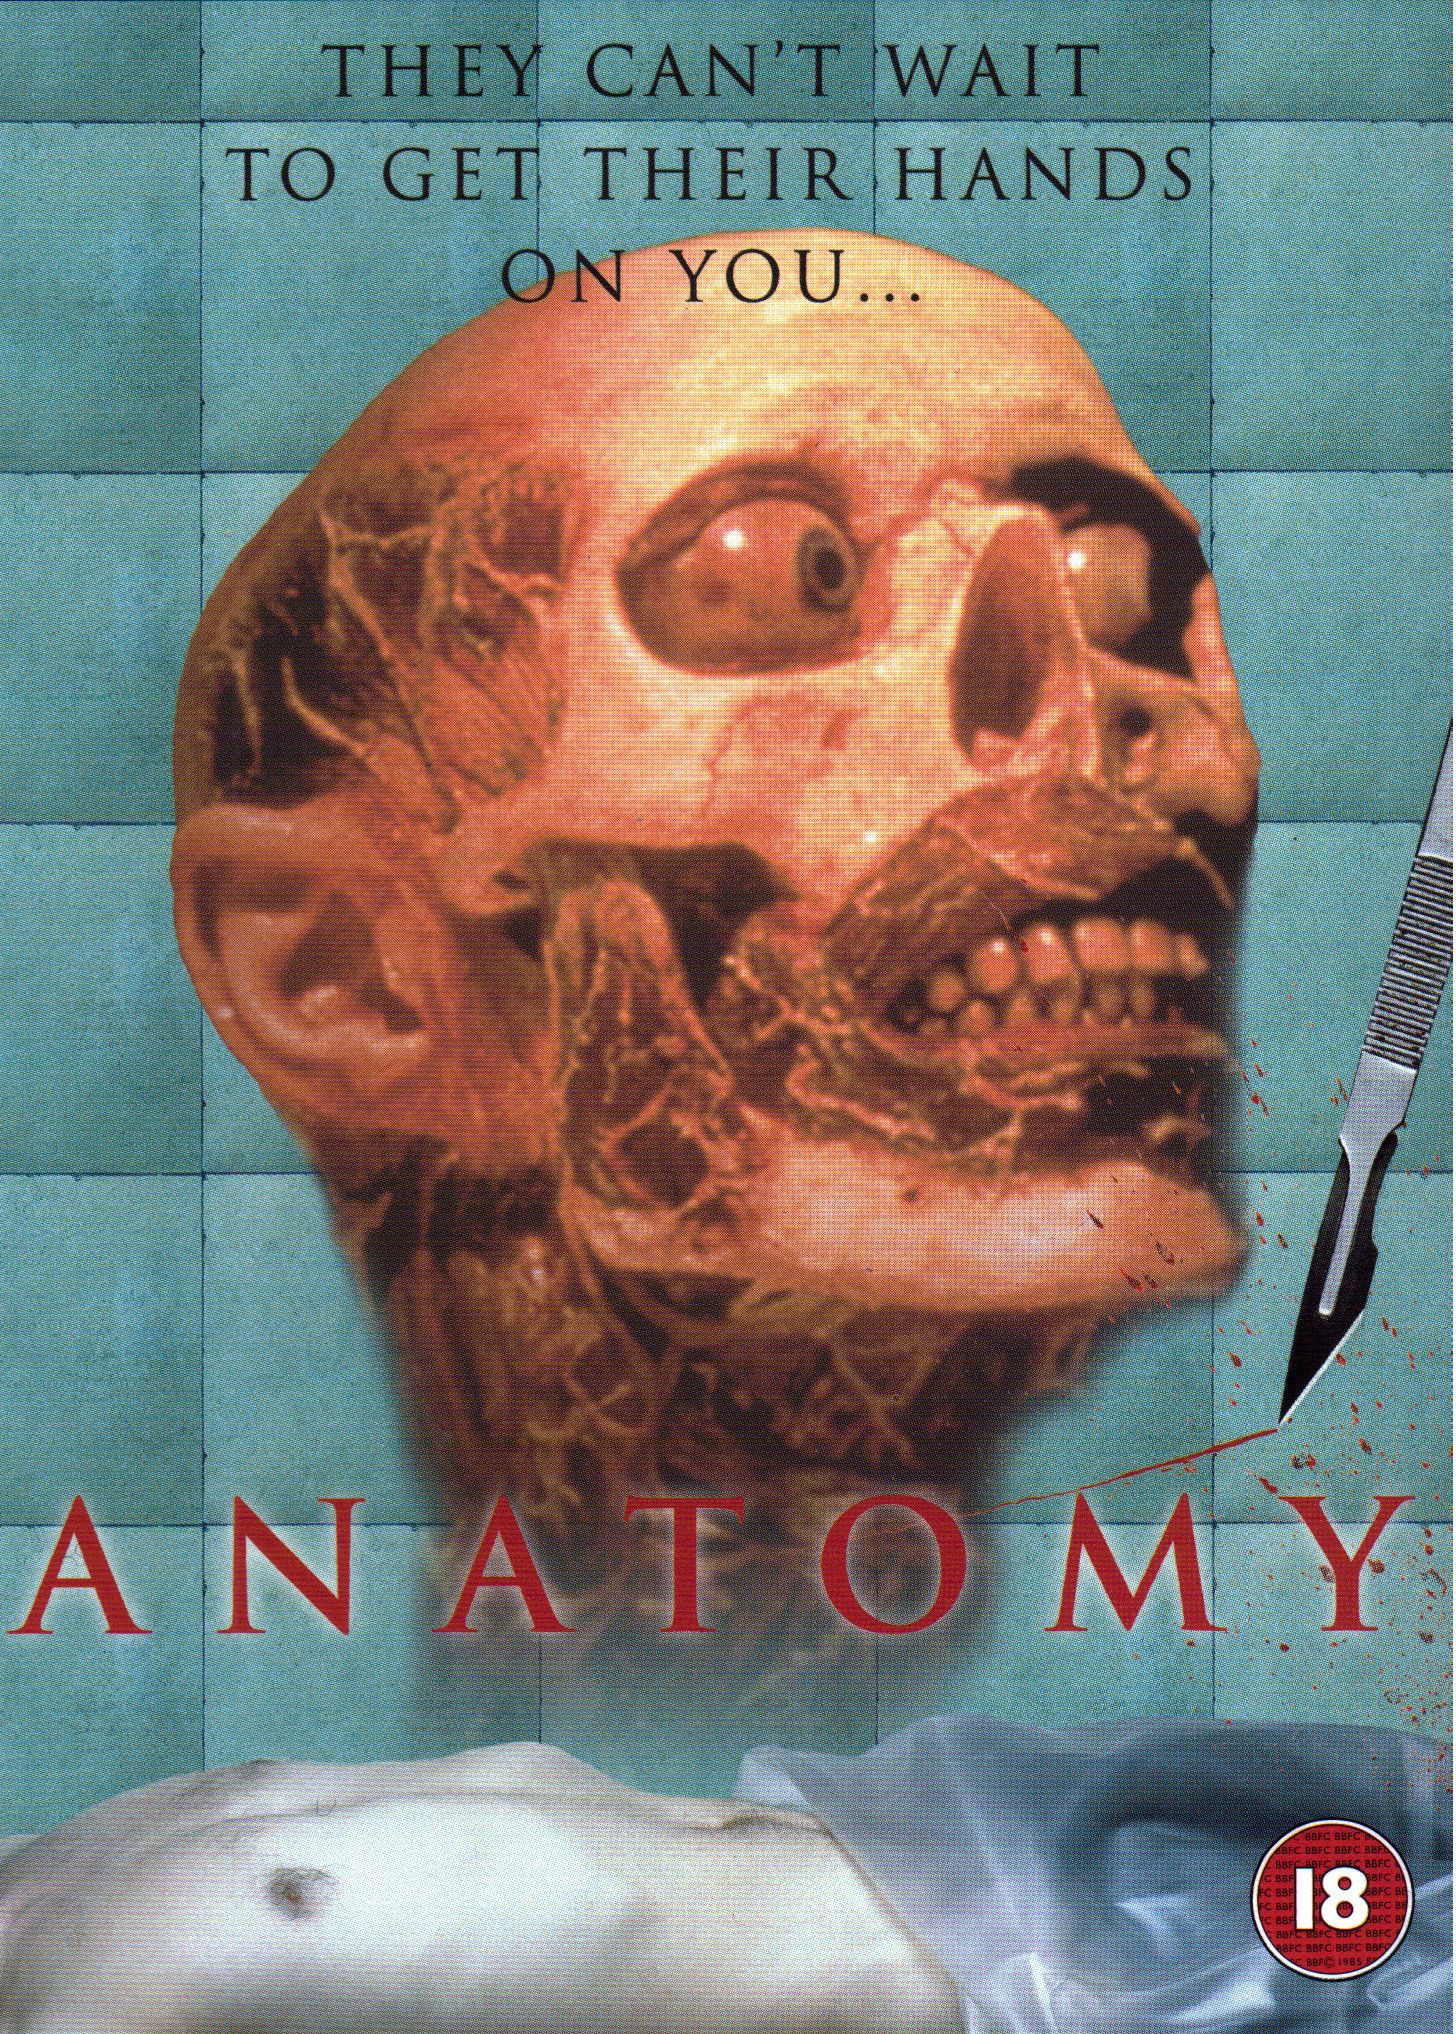 Anatomy (2000) Review, rating and Trailer Anatomie